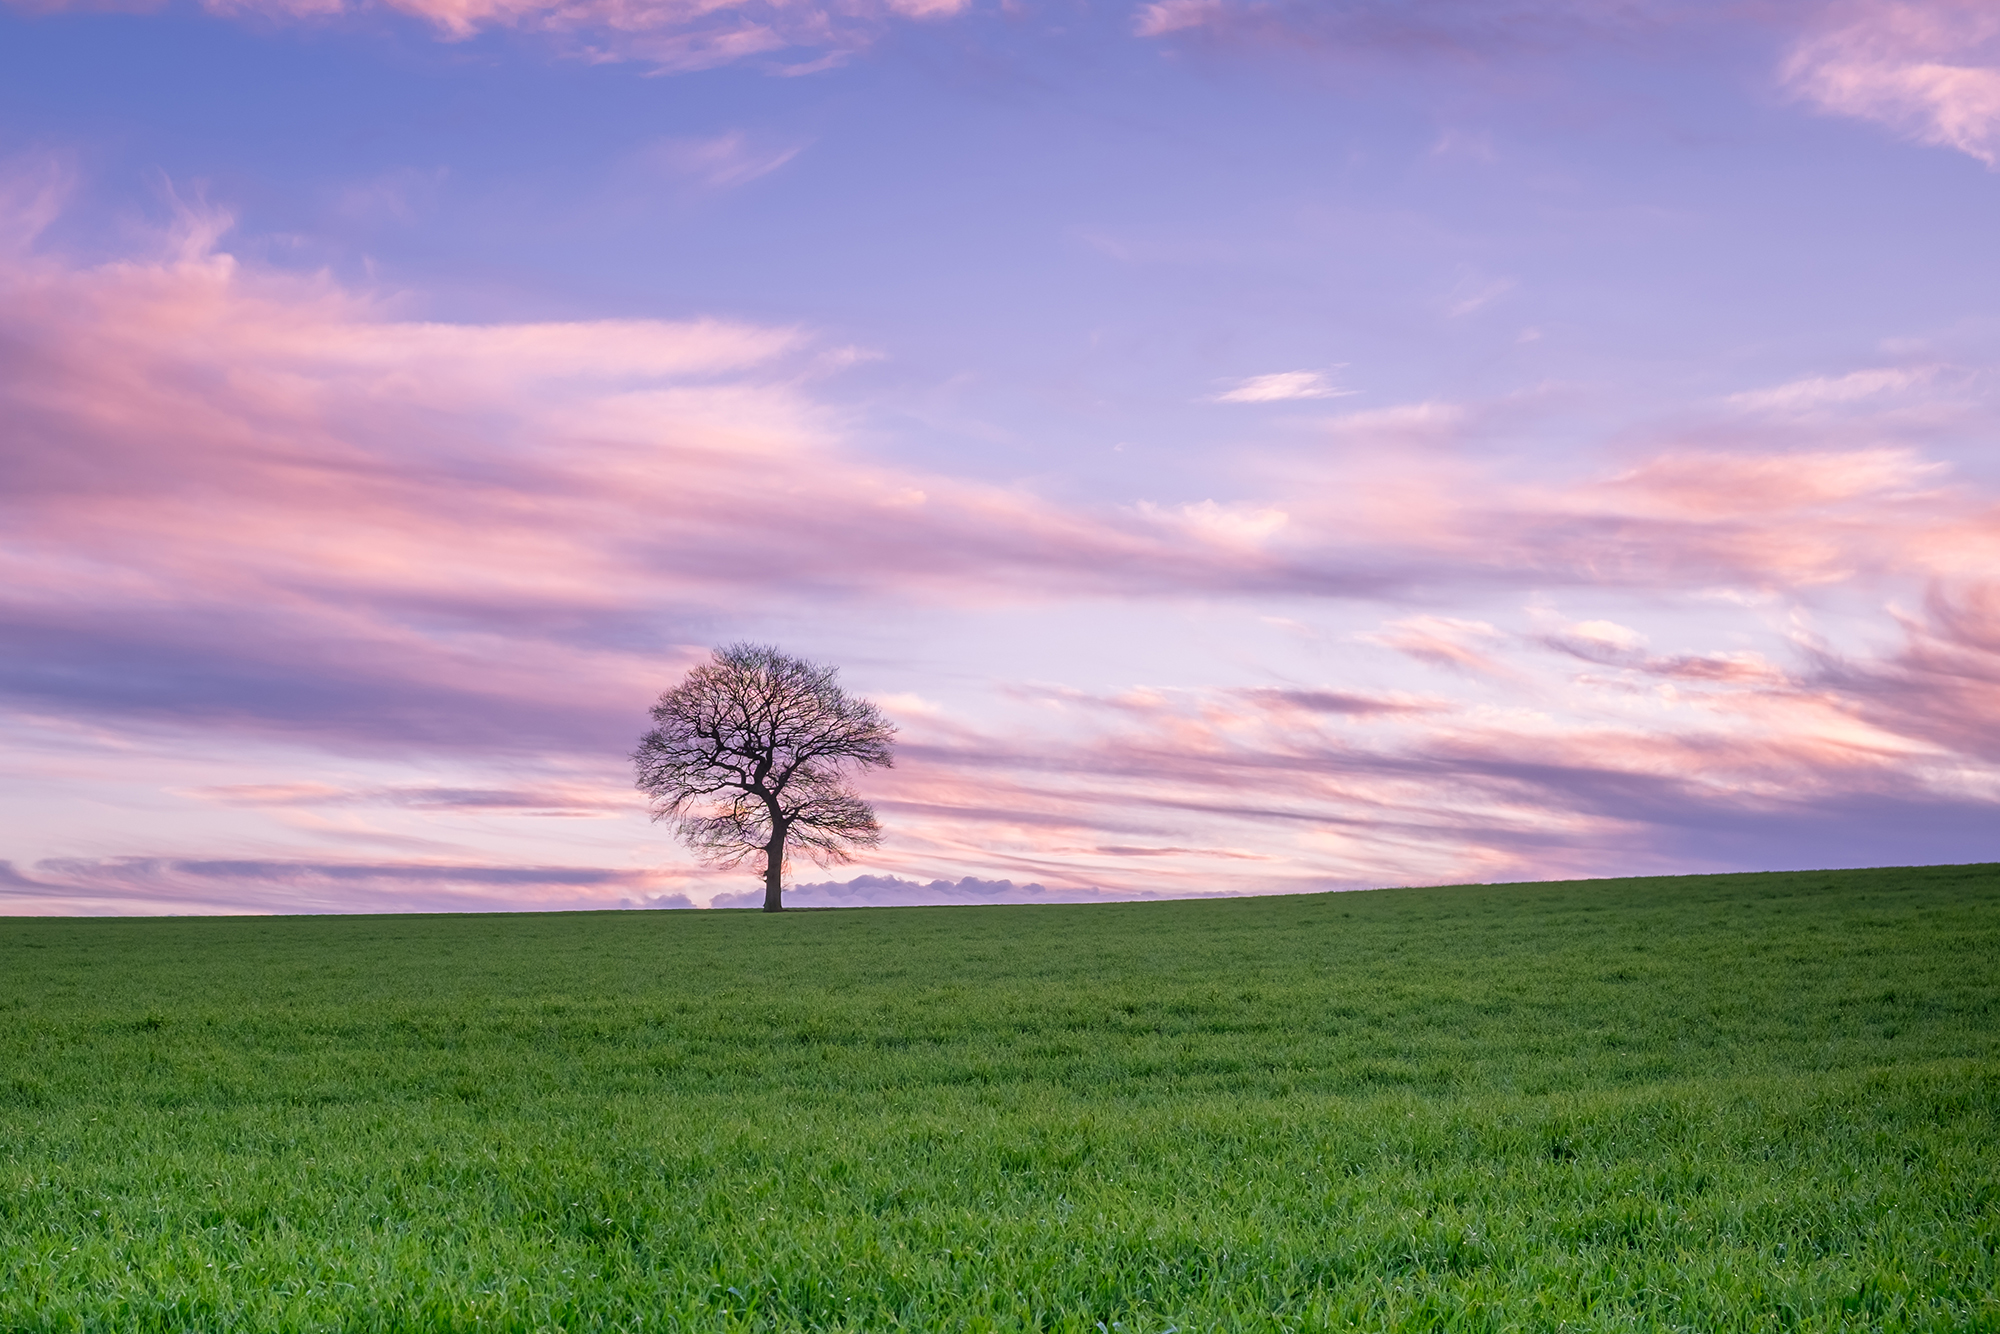 A photo of a lone tree taken at Sunset in Surrey by Trevor Sherwin